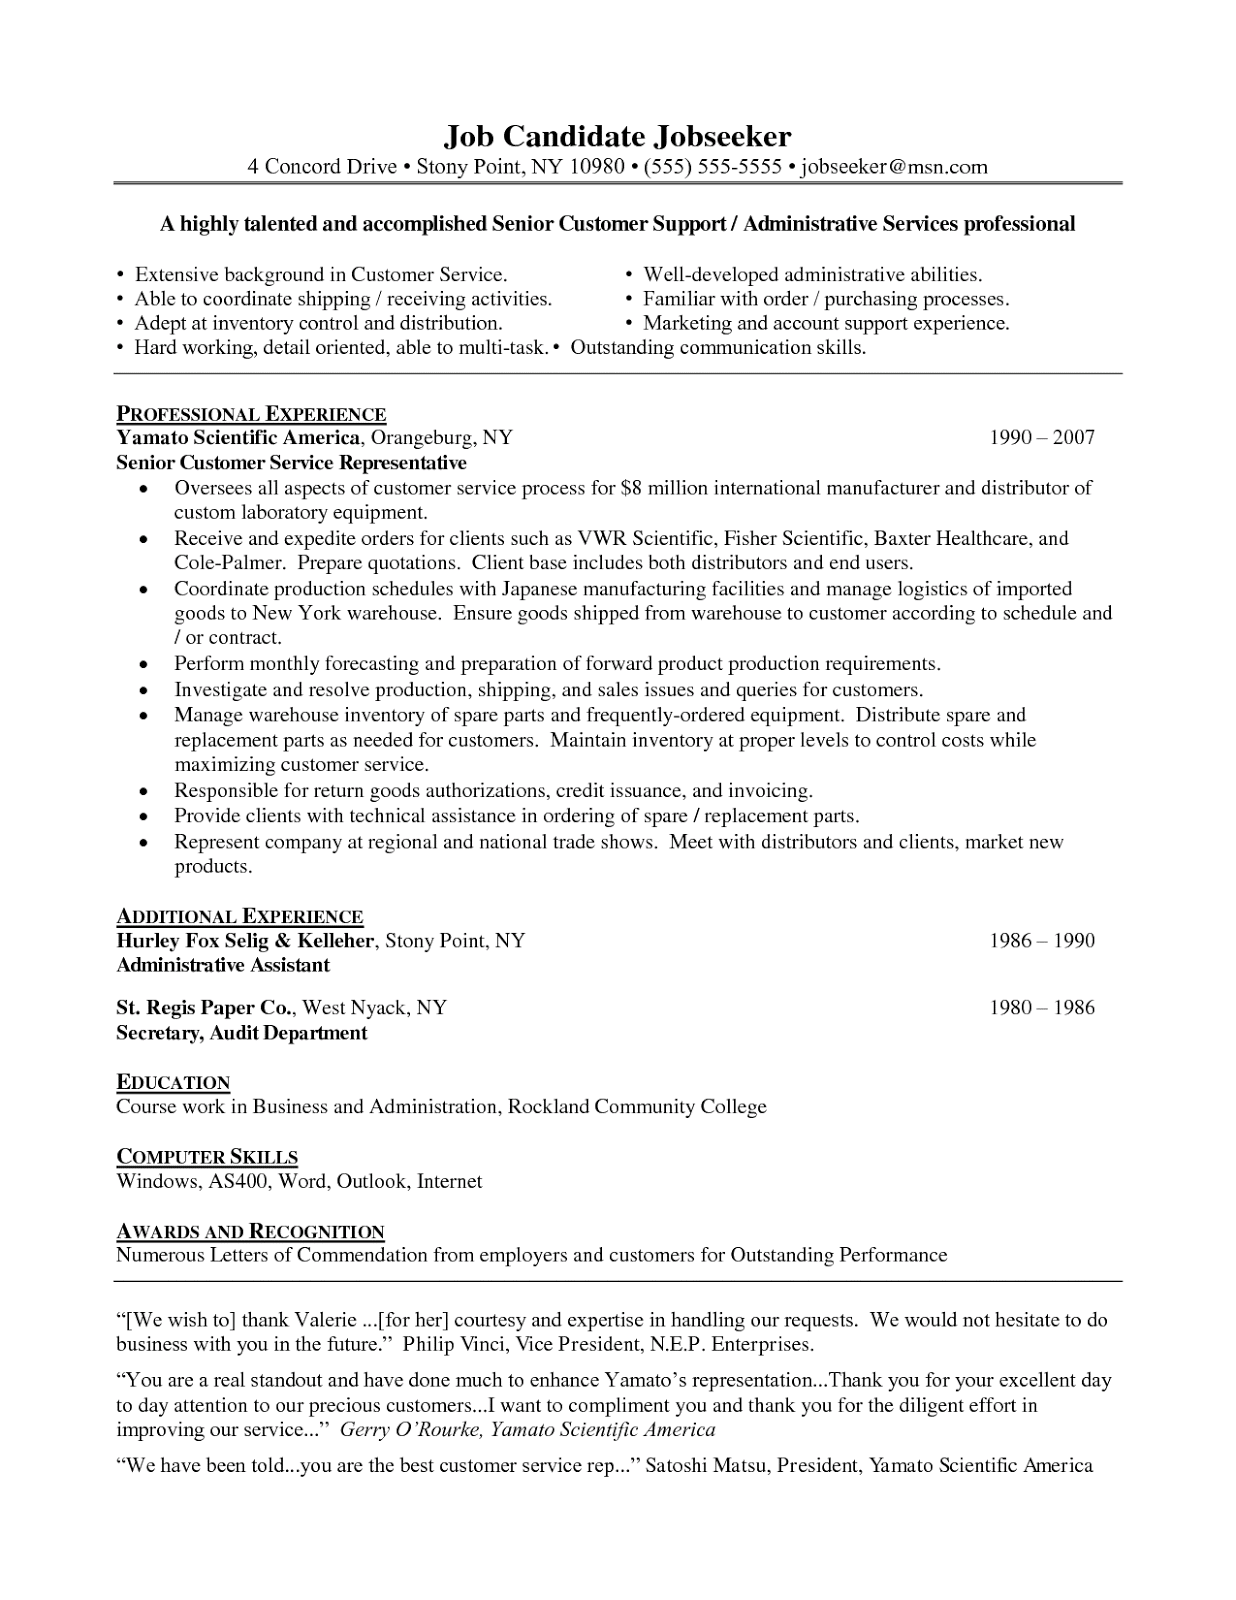 computer skills example resume resume examples resume example objective with objective statement as career in industrial